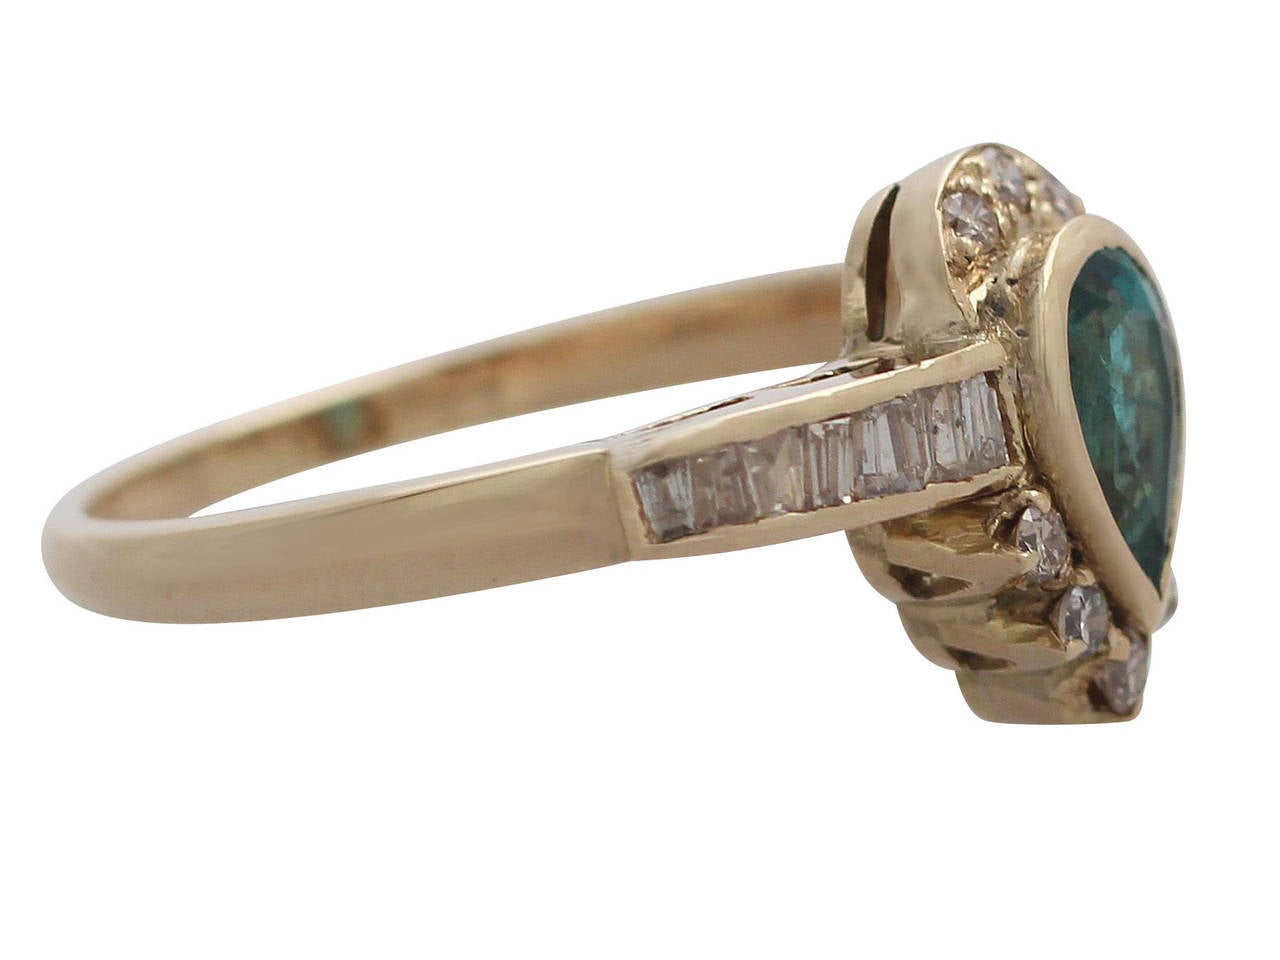 Emerald & Diamond Yellow Gold Cocktail Ring In Excellent Condition For Sale In Jesmond, GB